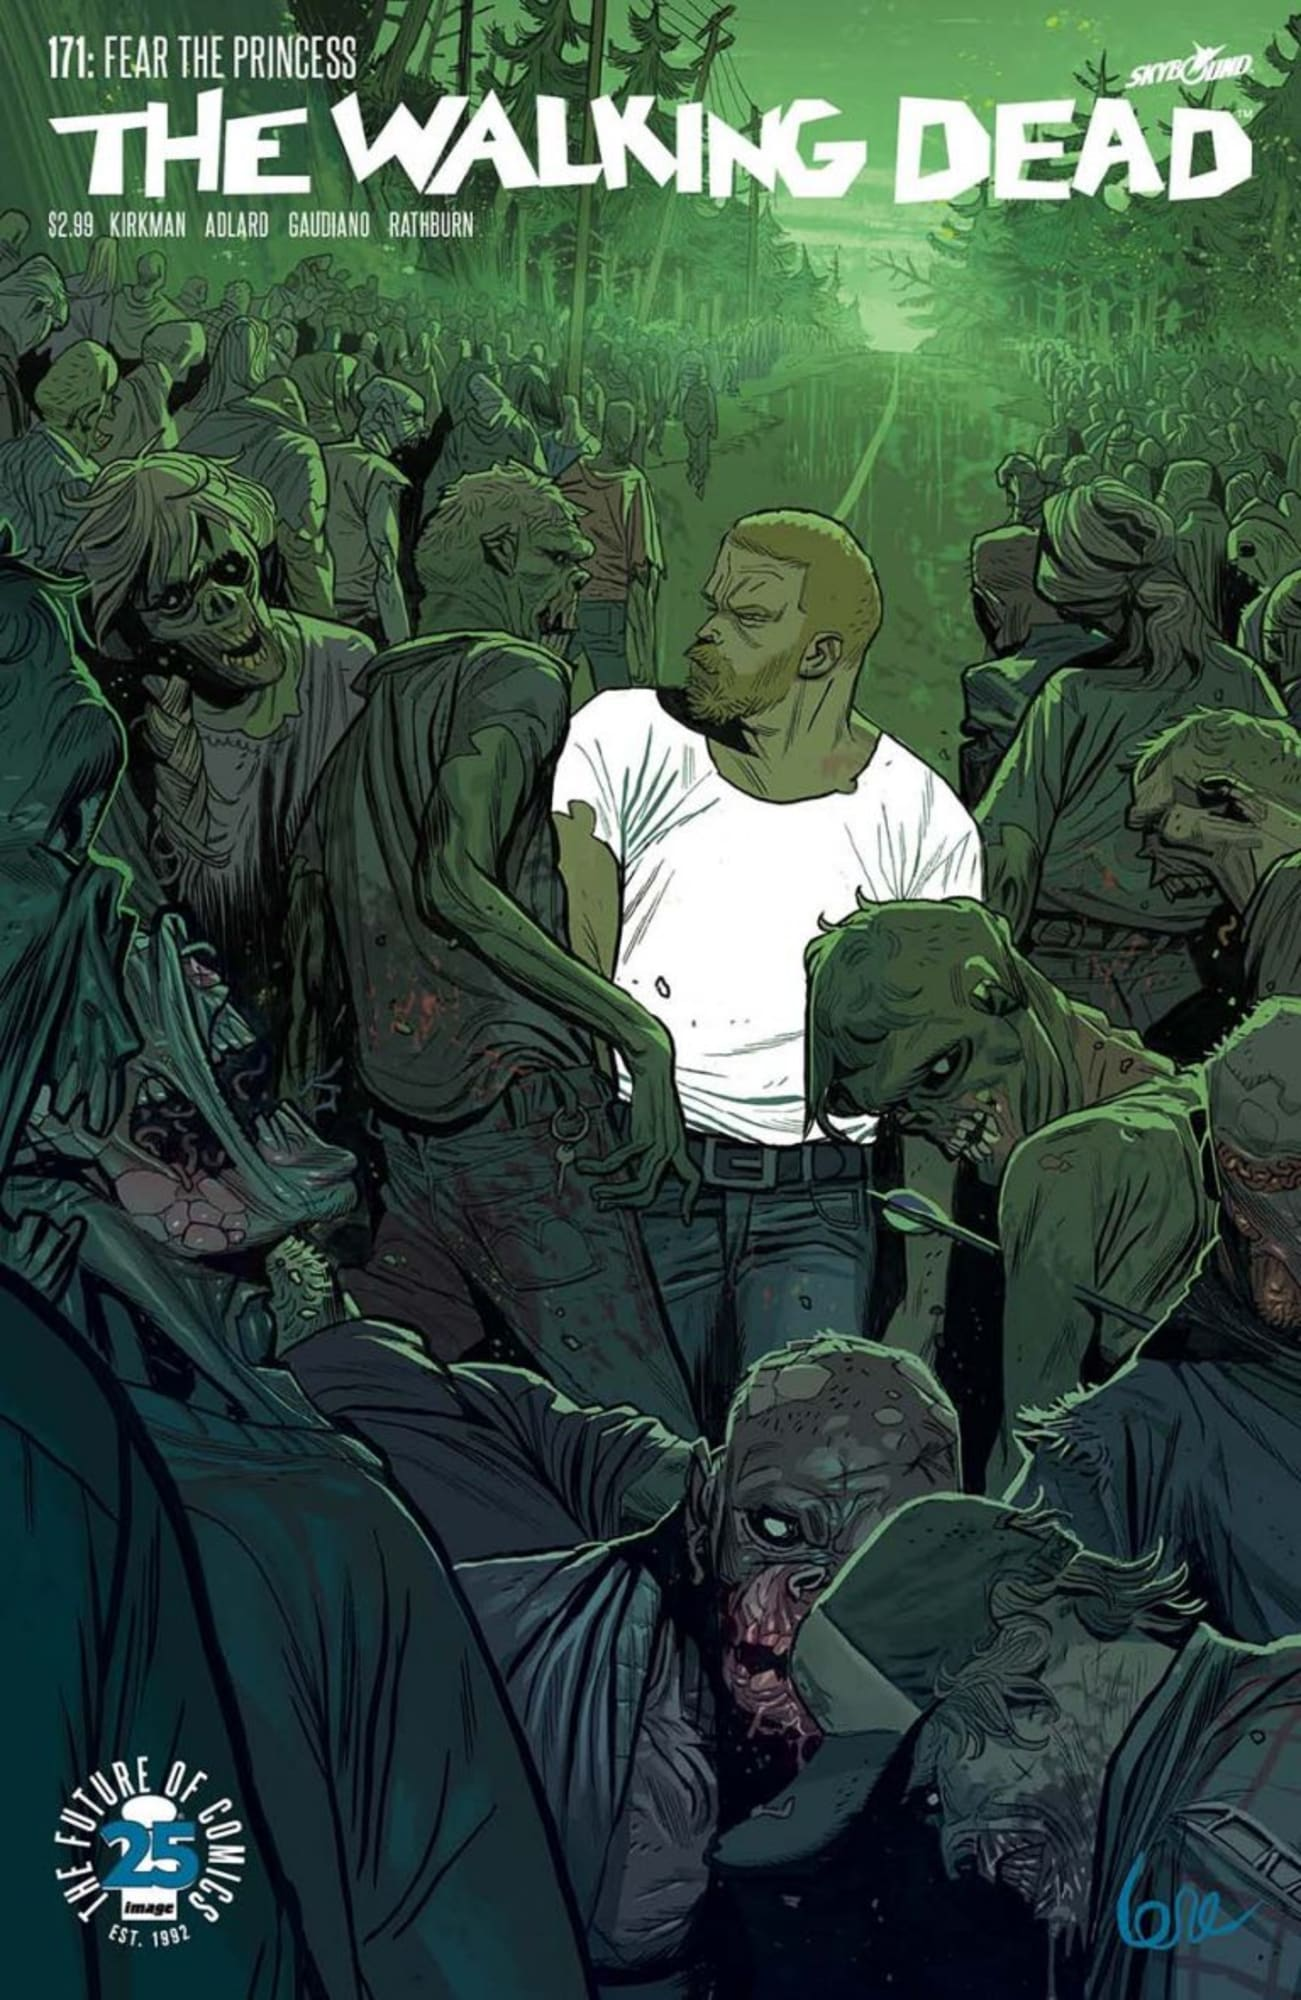 The Walking Dead 171 Variant Comic Book Cover By De Felici Announced